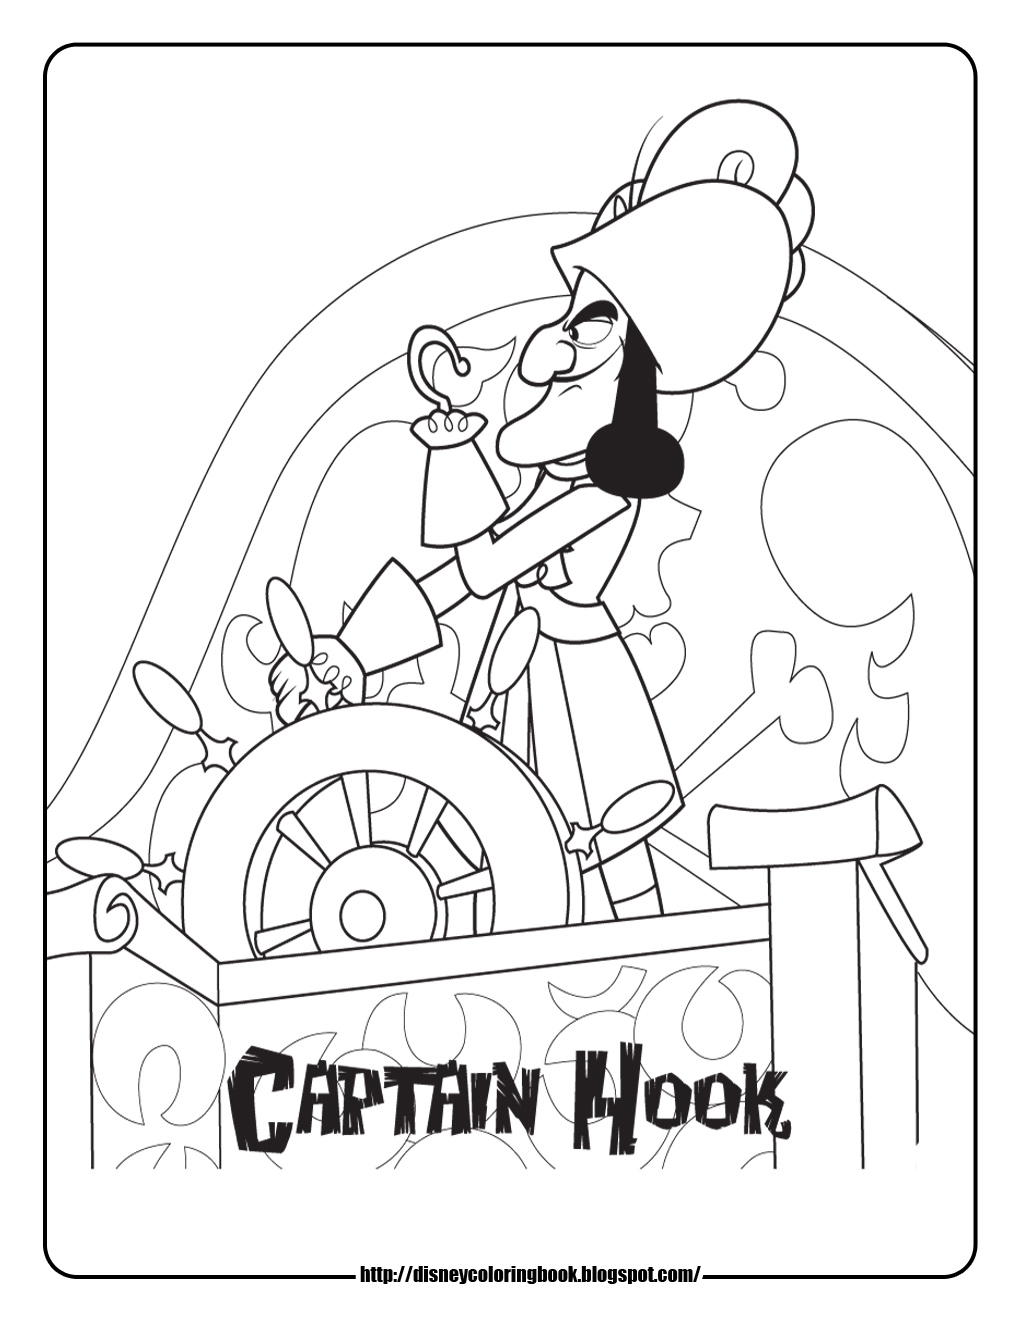 jake the pirate coloring pages - disney coloring pages and sheets for kids jake and the